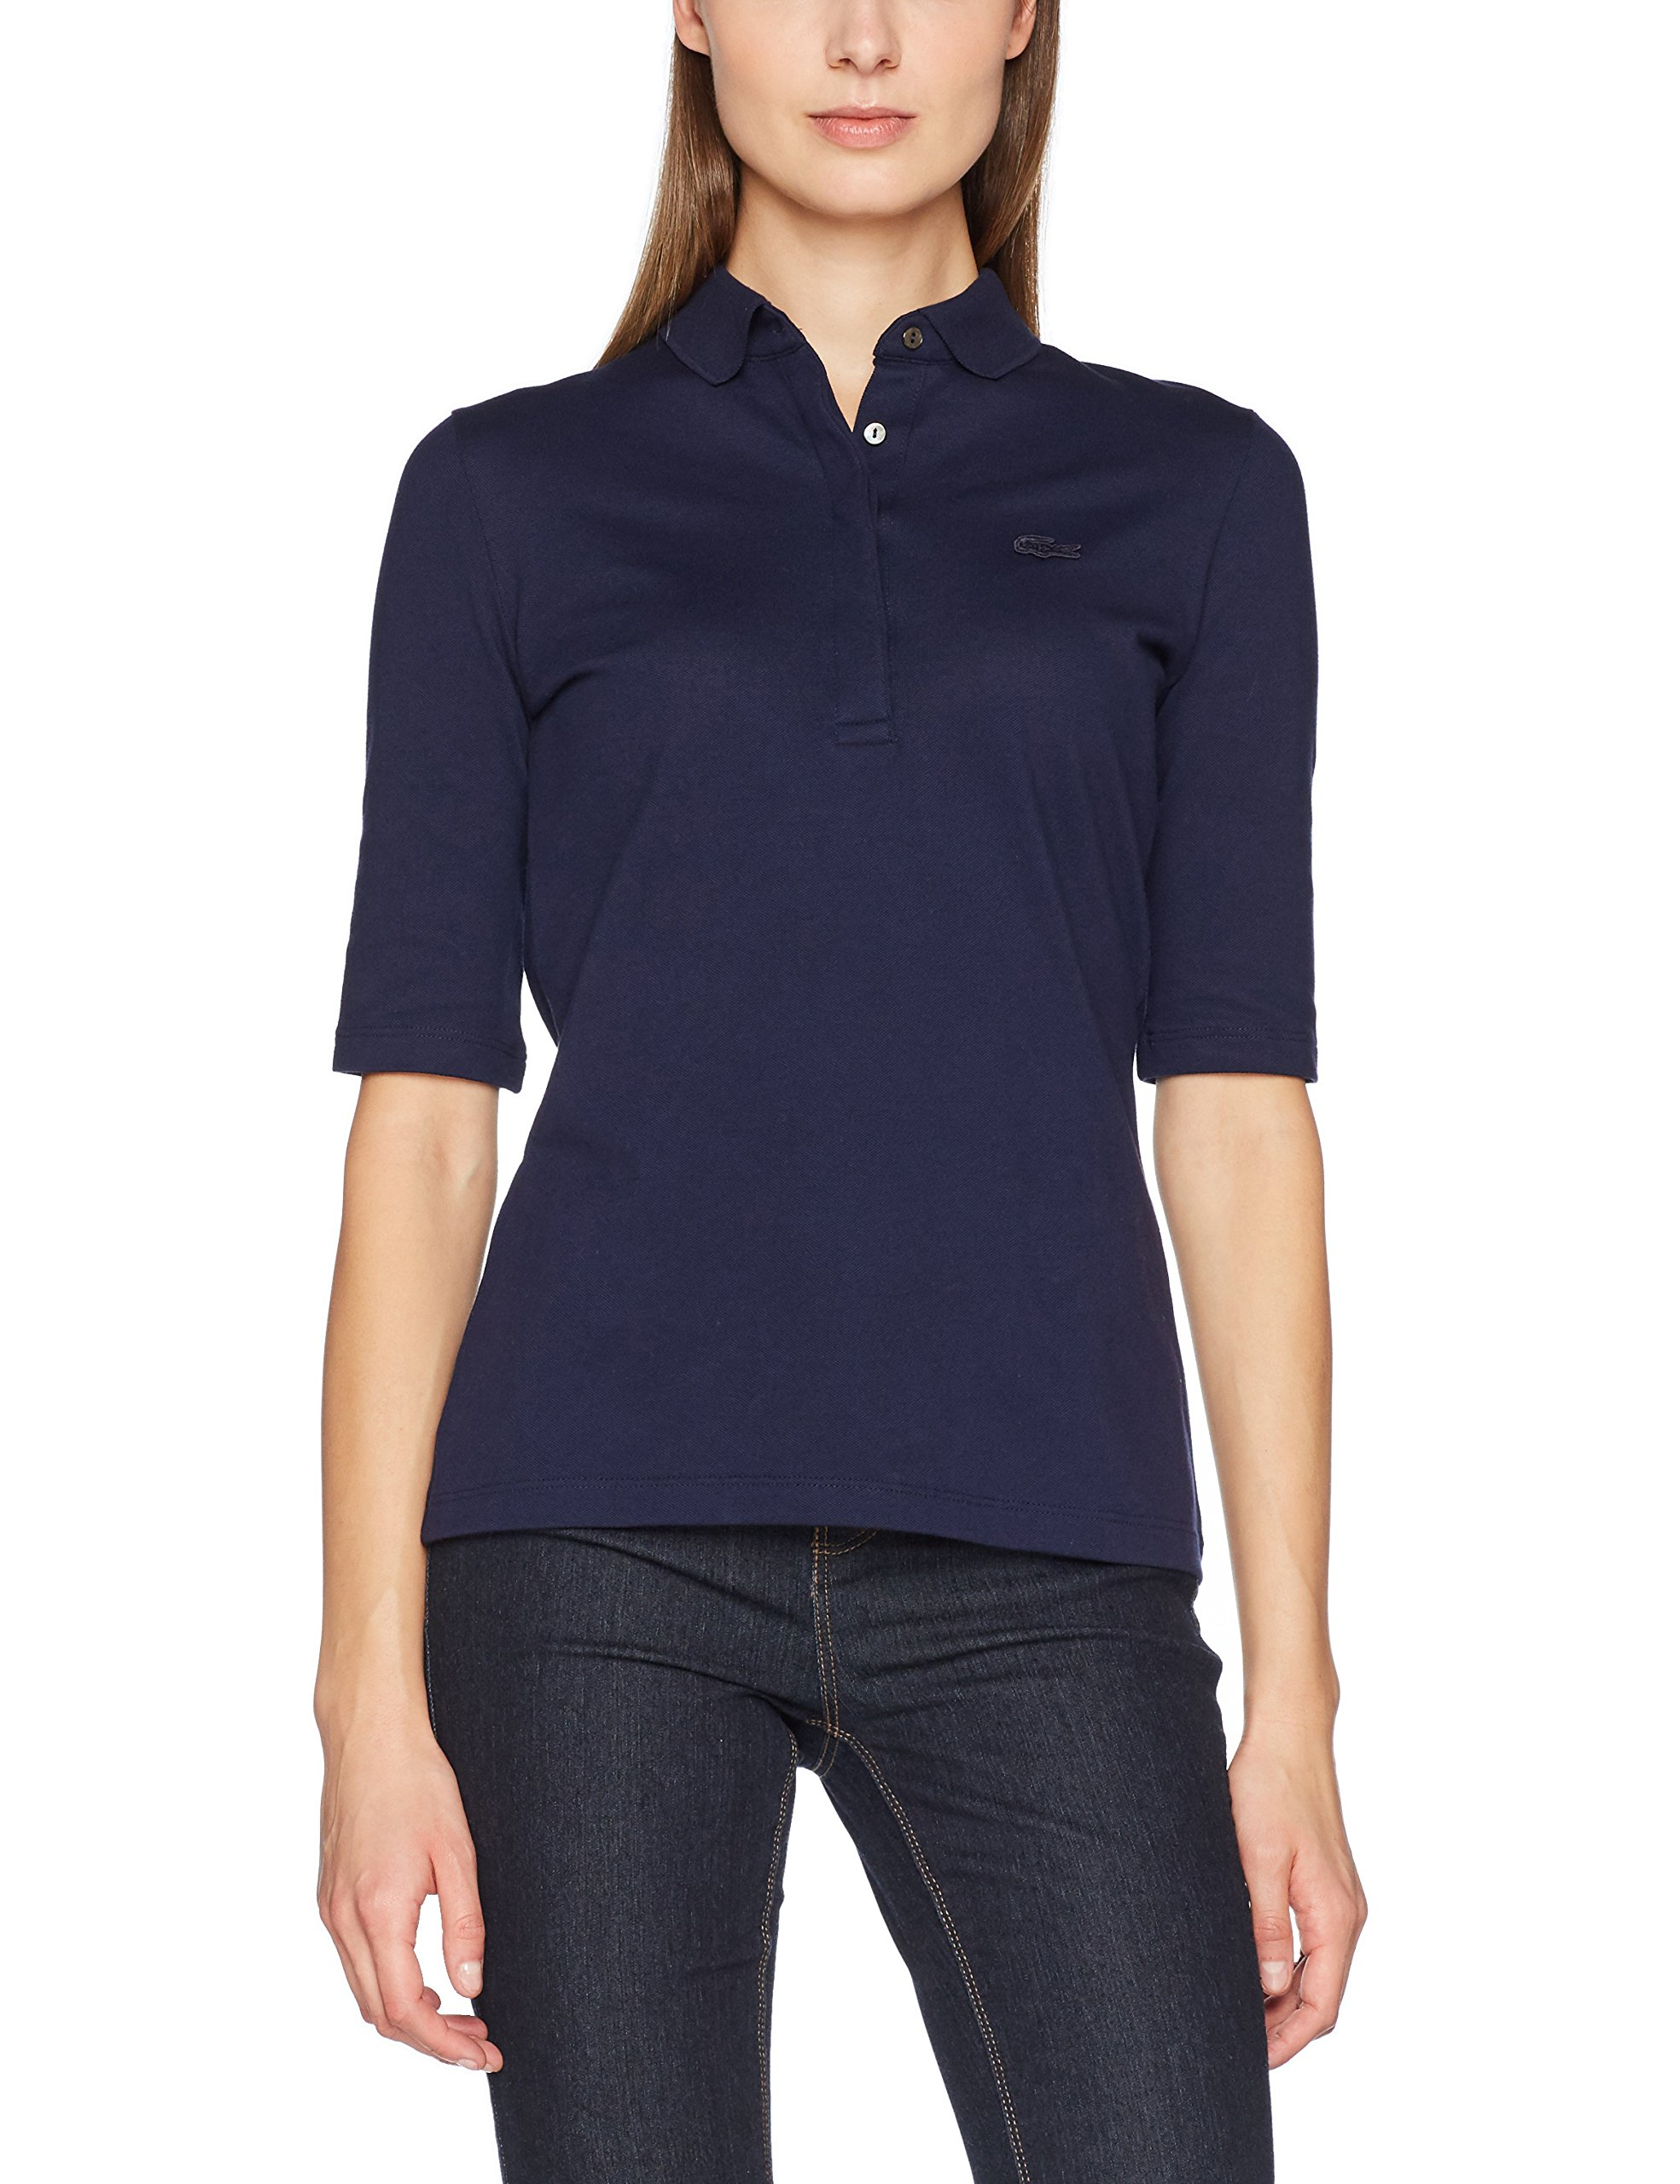 Pf7844 Pf7844 Fabricant42Femme Lacoste Lacoste PoloBleumarinetaille kX80OnwP